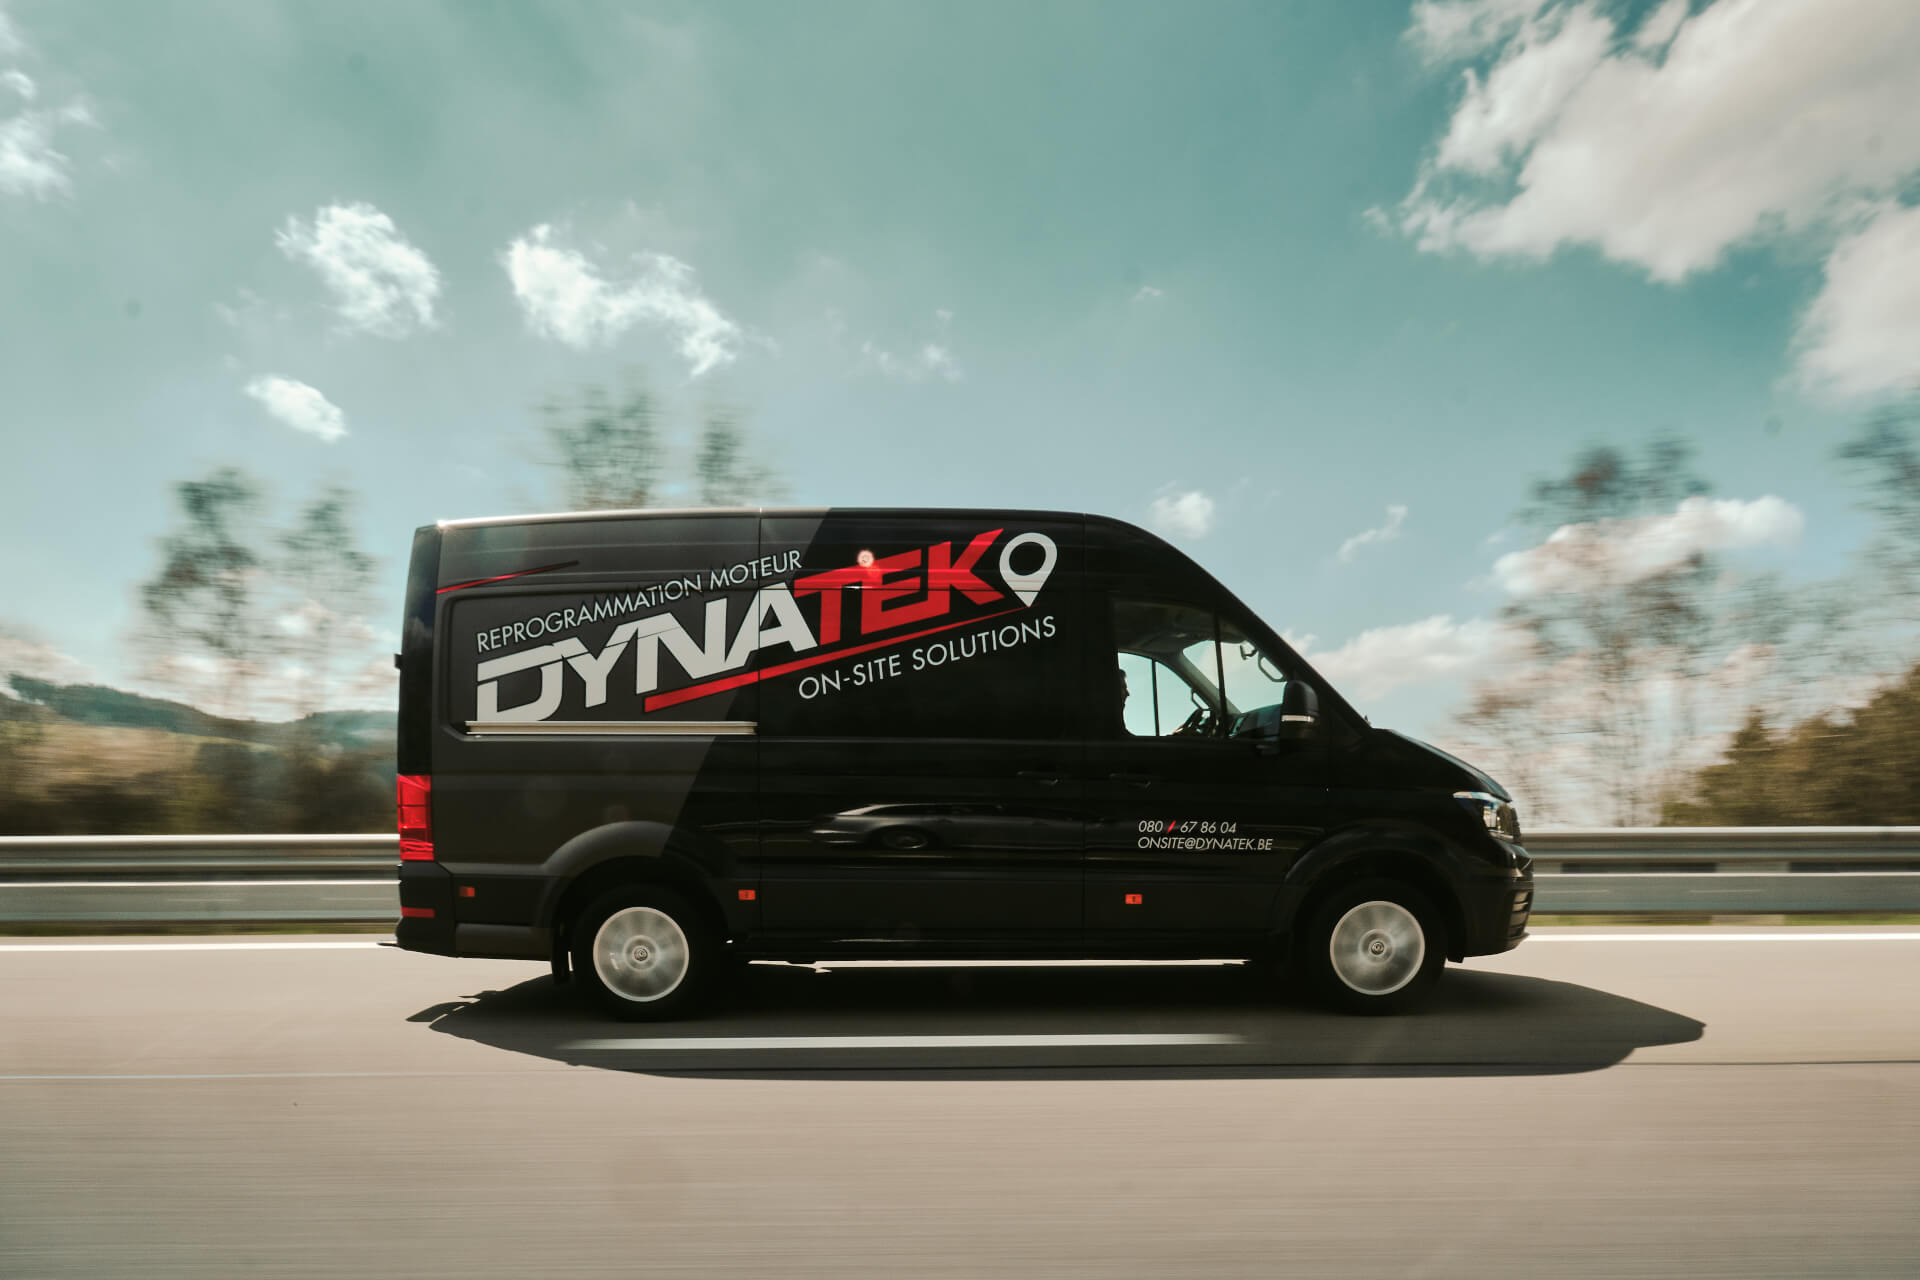 Dynatek On-Site Solutions - photo 3